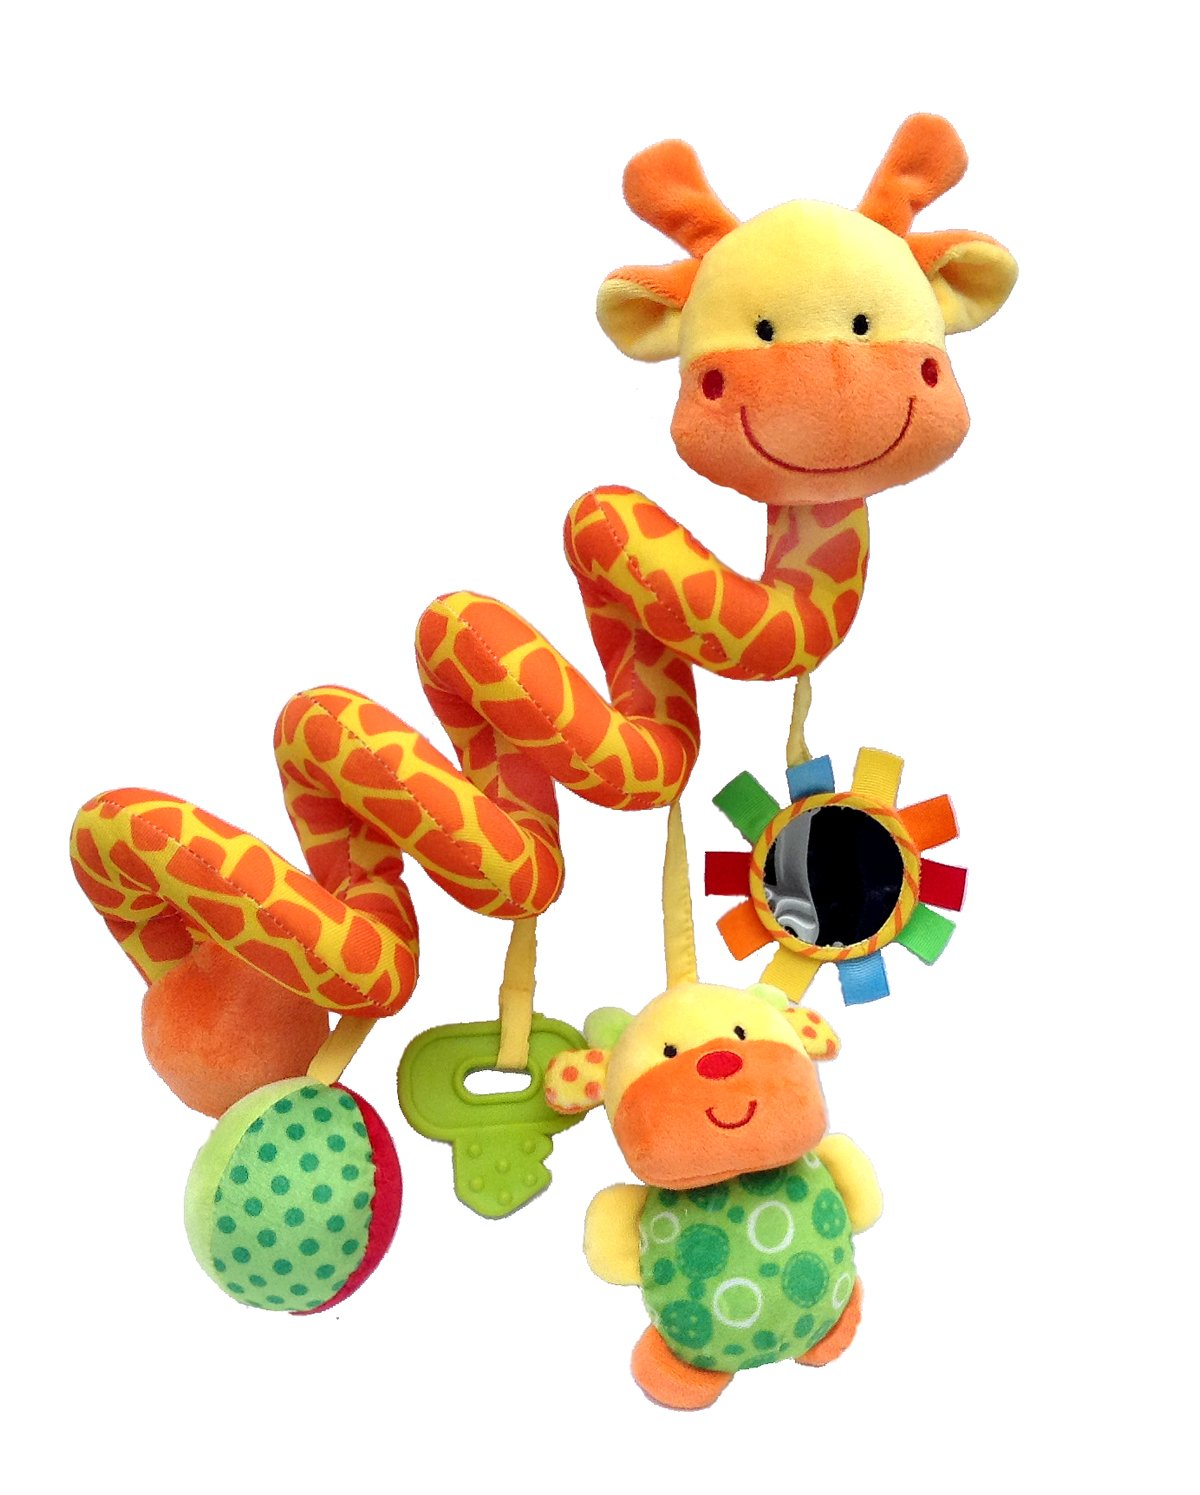 Crib Critters Giraffe Baby Crib Toy From Wraps Around Crib Rail or Stroller - Baby Toy for Babies 3 to 6 Months and Older